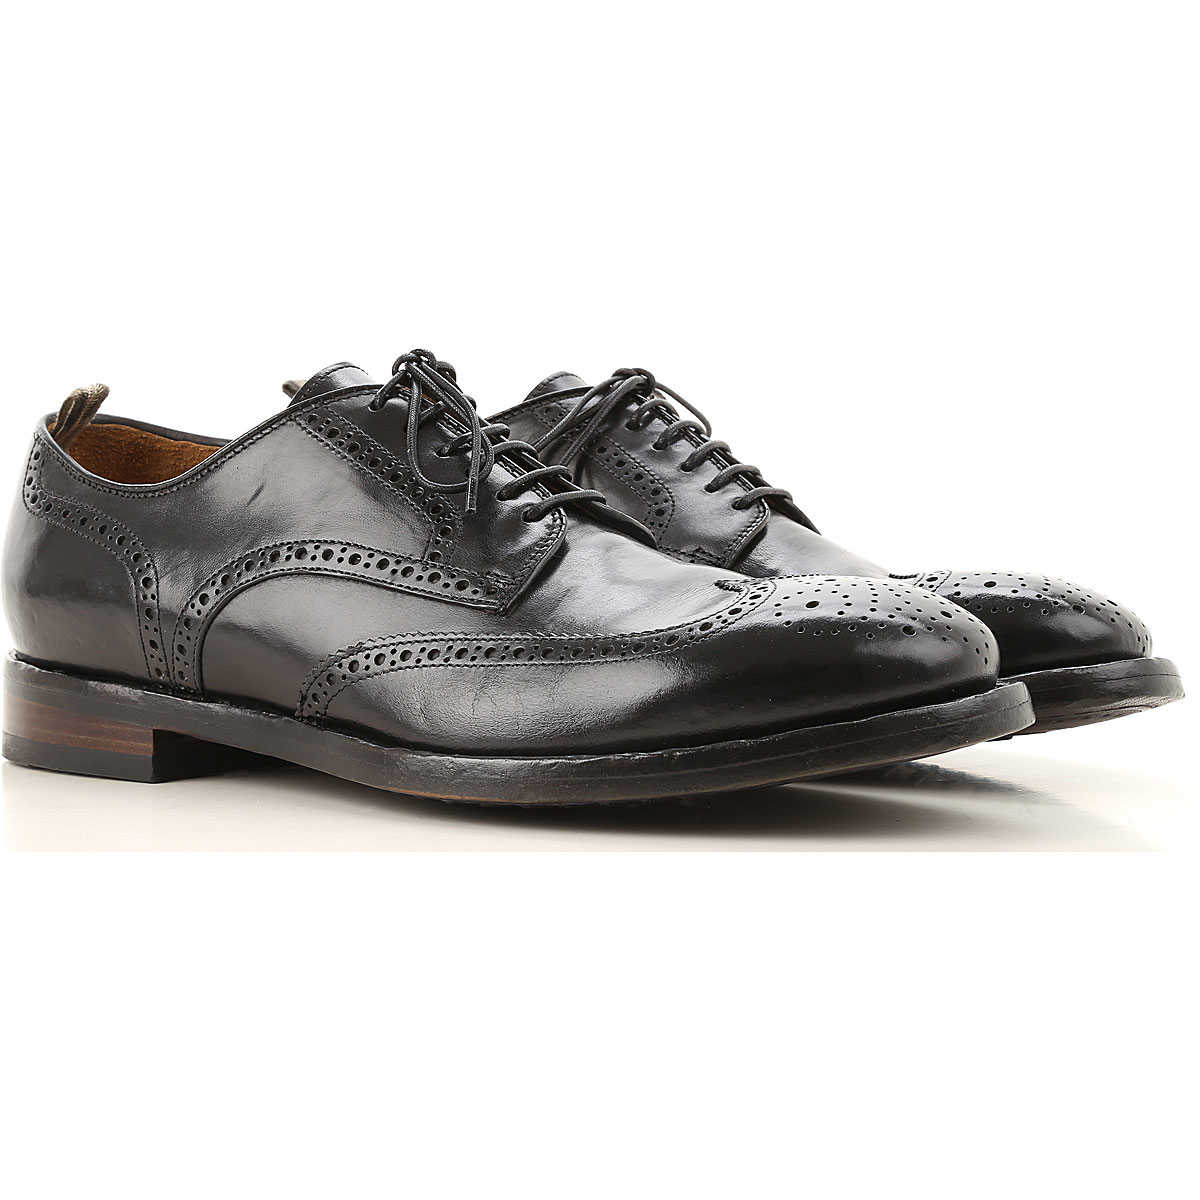 Officine Creative Lace Up Shoes for Men Oxfords Derbies and Brogues SE - GOOFASH